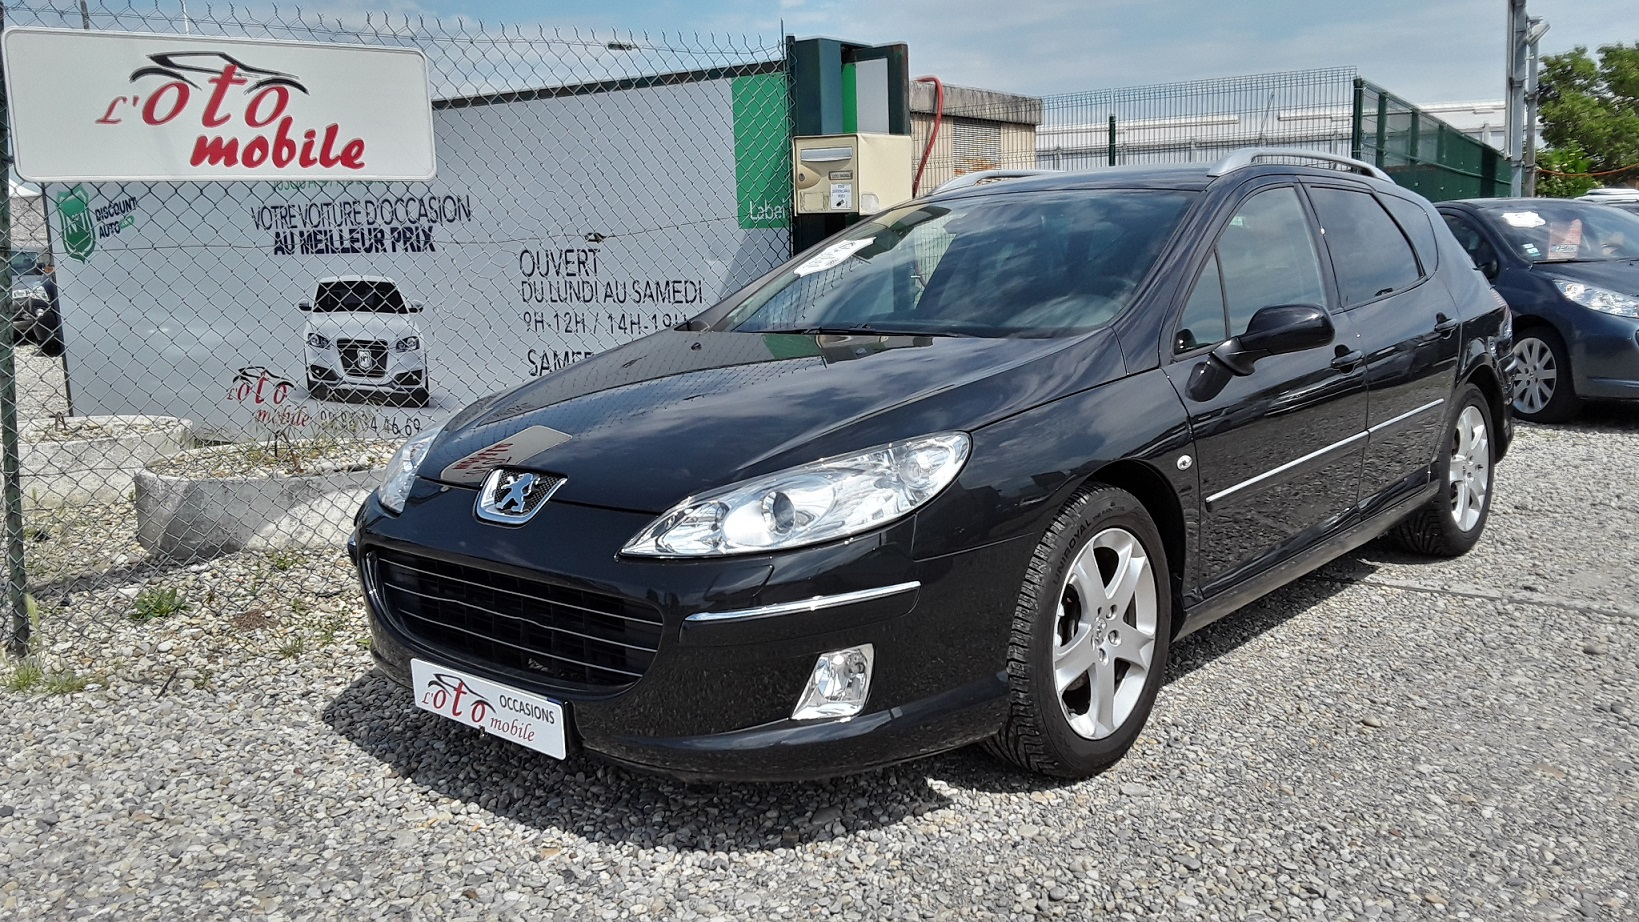 voiture peugeot 407 sw griffe 2 0 hdi 16v 136 gps xenon occasion diesel 2006 166800 km. Black Bedroom Furniture Sets. Home Design Ideas